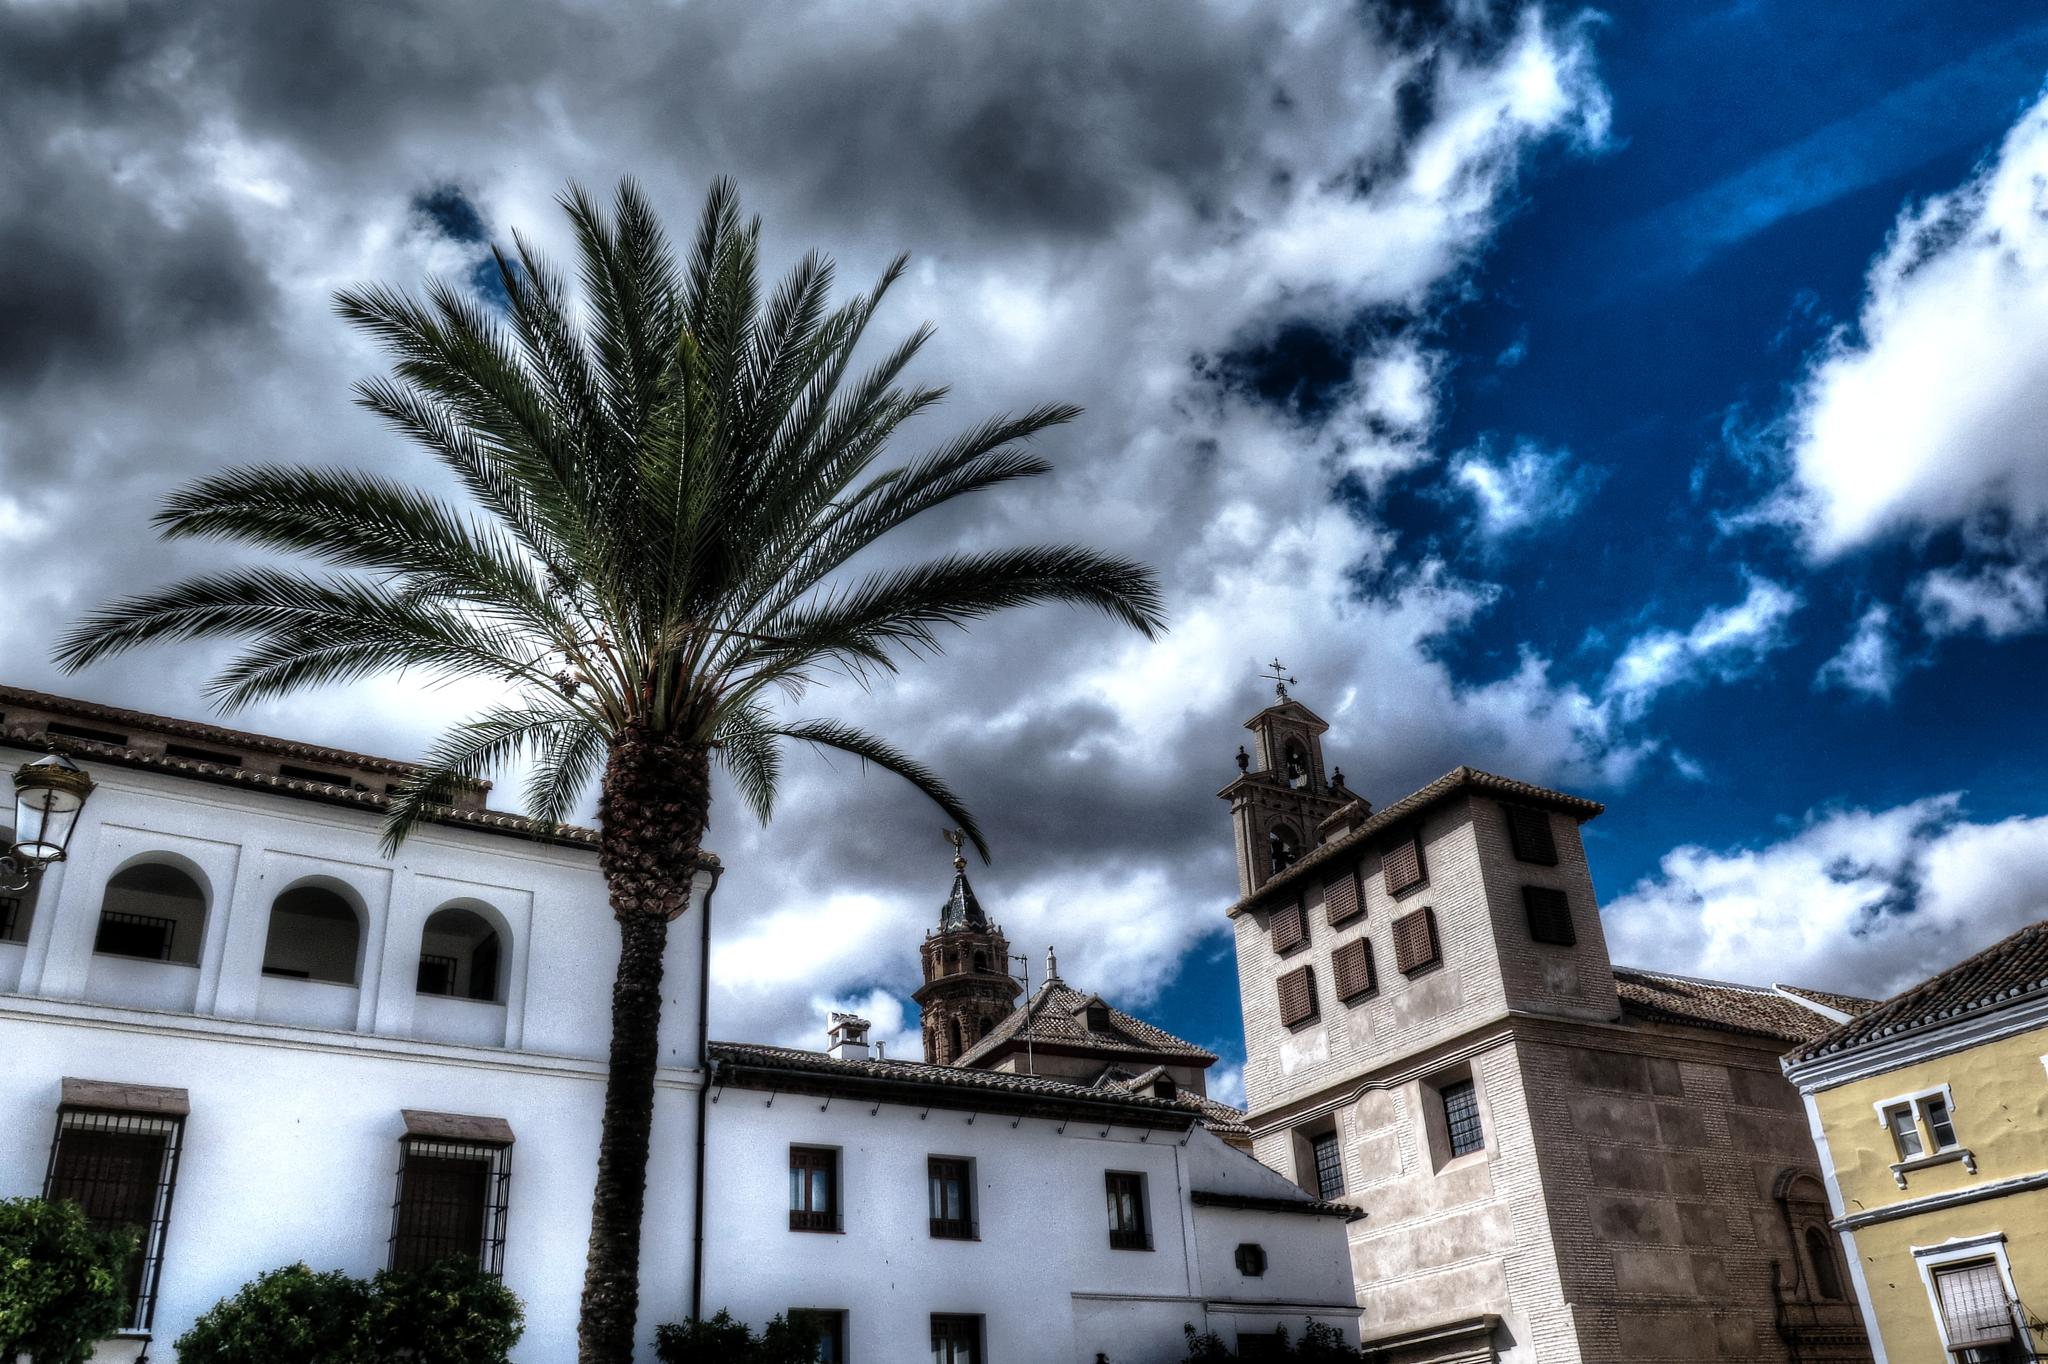 Antequera by SteveR